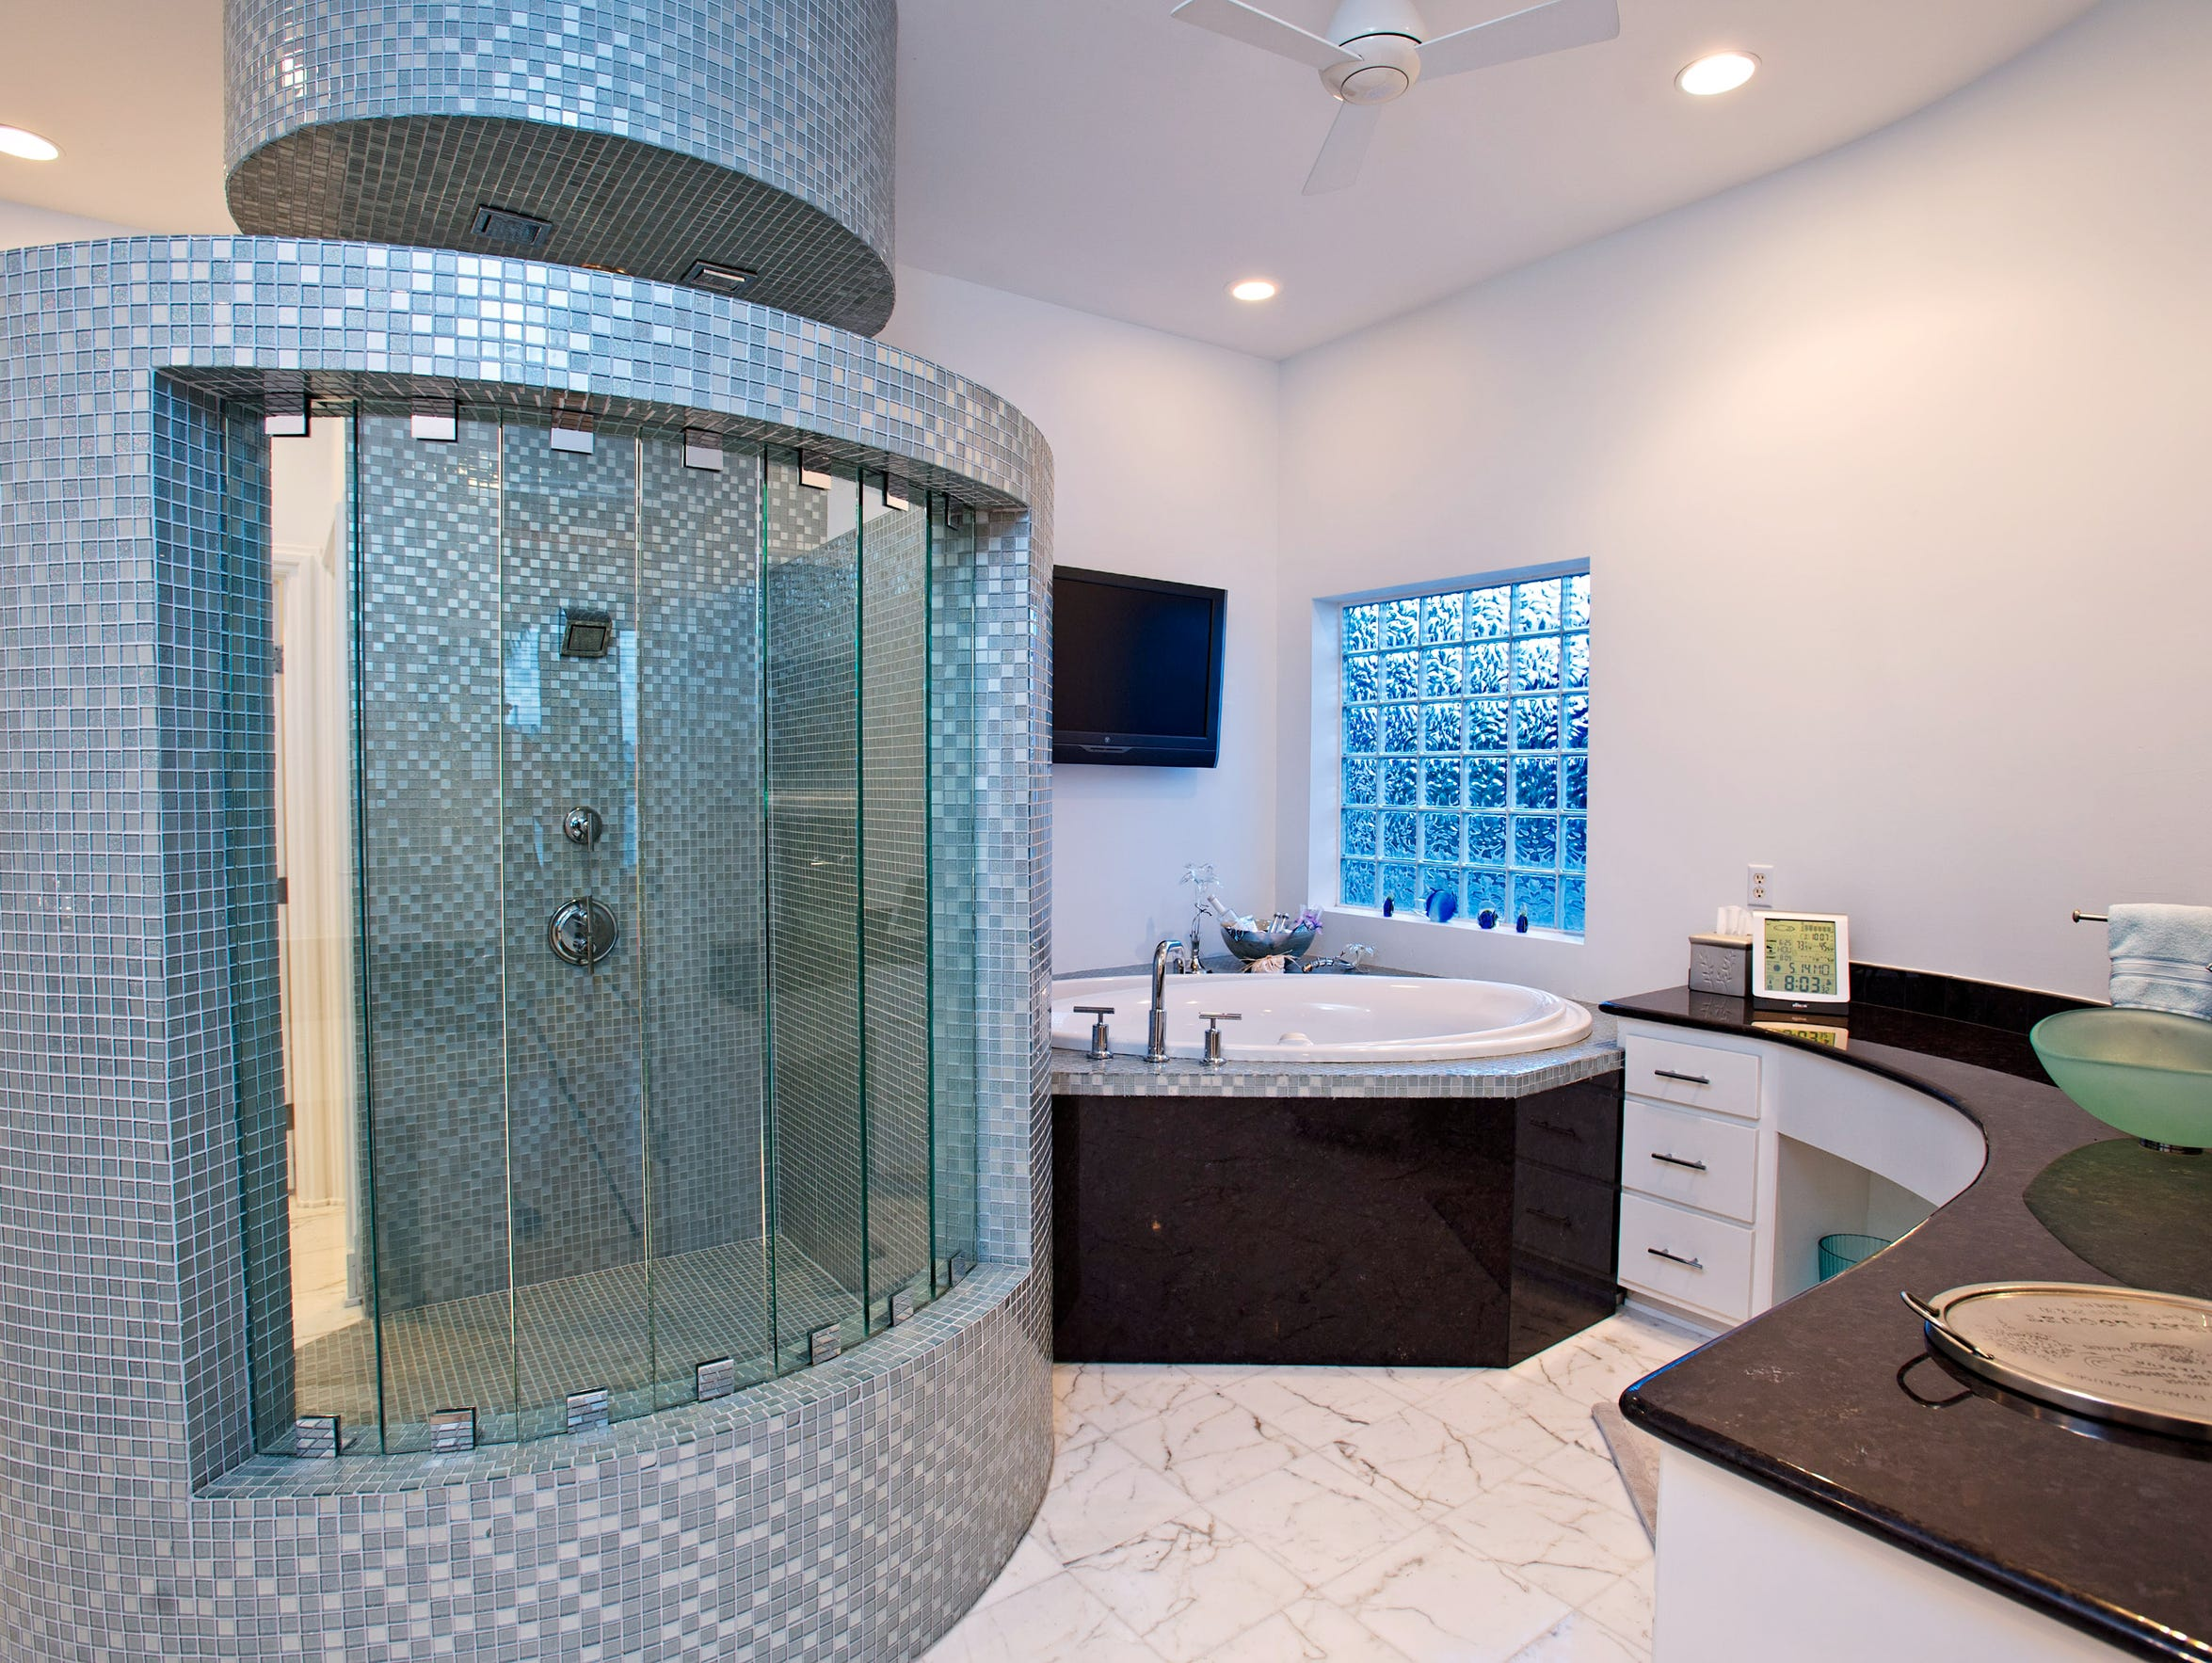 A unique tile and glass round shower enclosure with